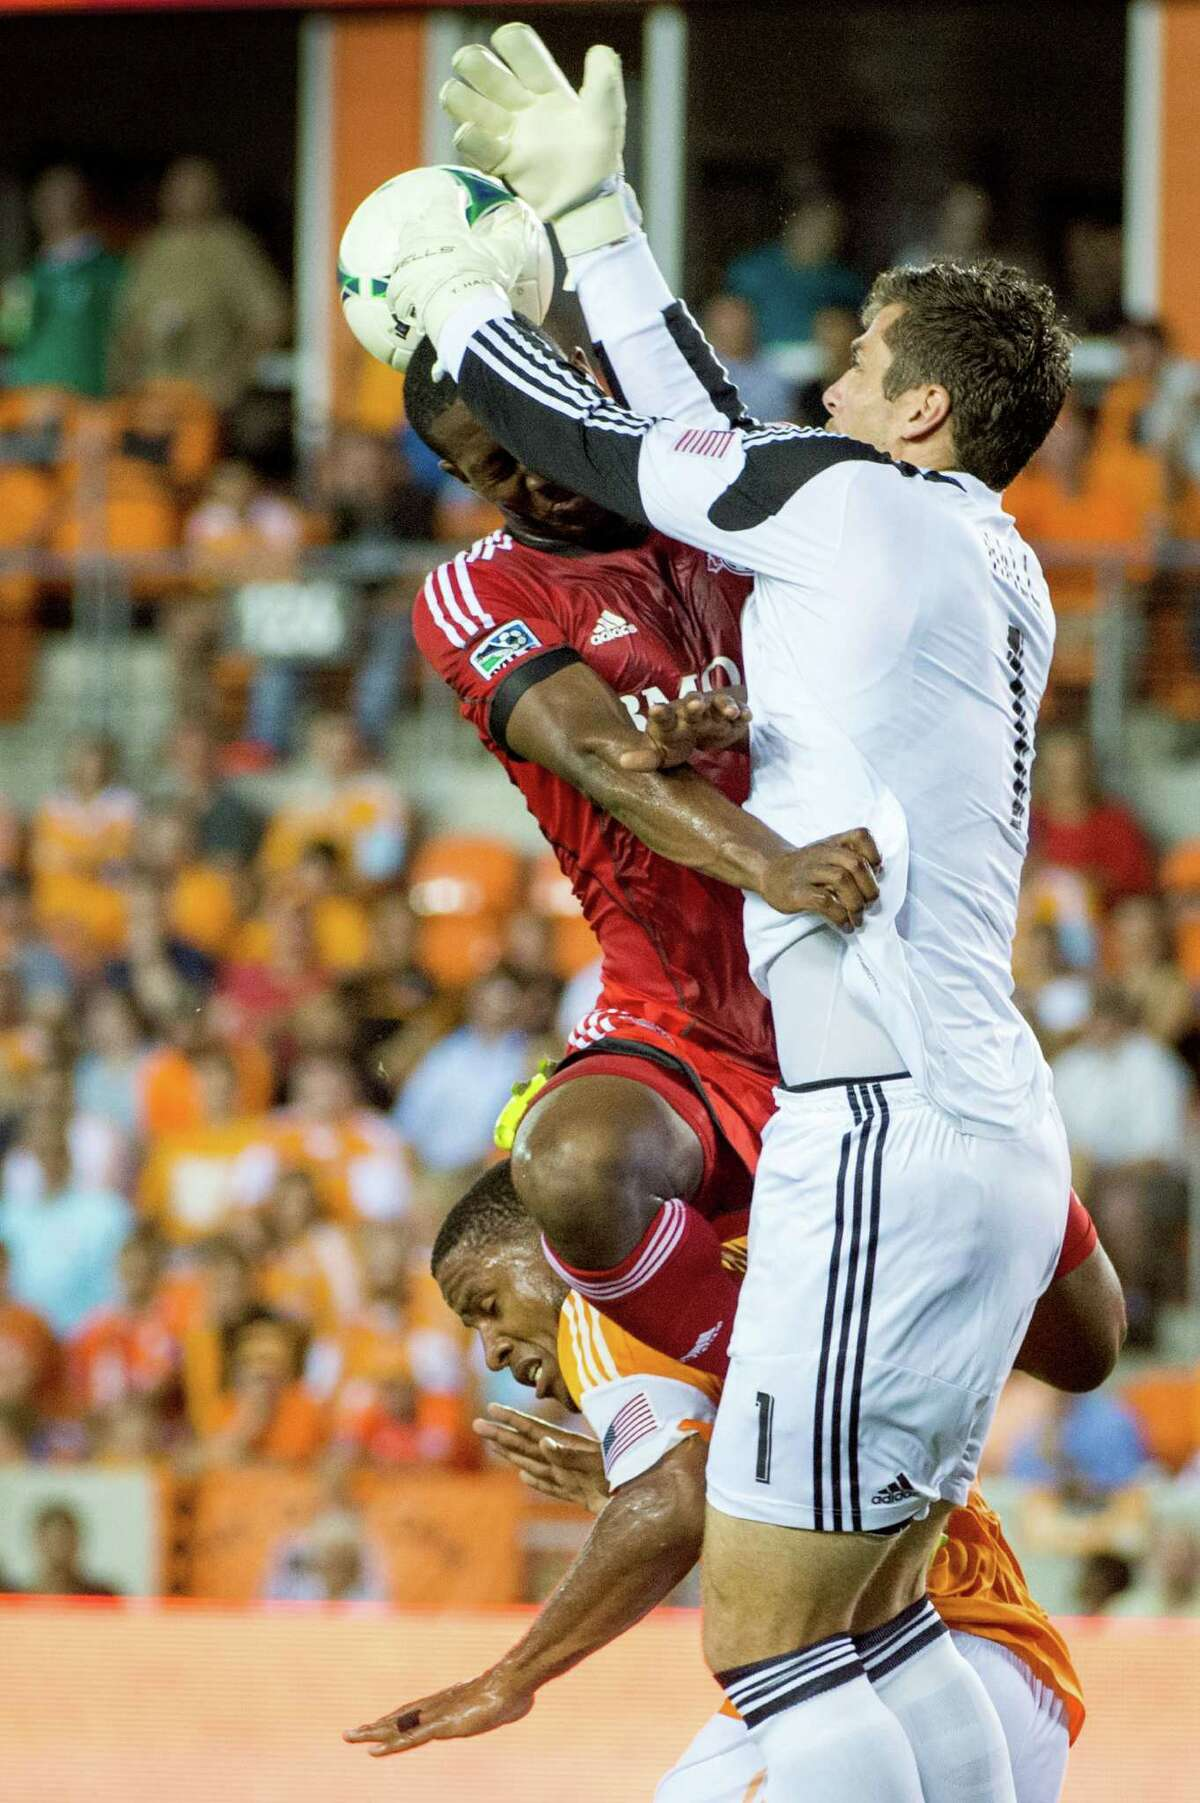 Dynamo 0, Toronto 0 Houston Dynamo goalkeeper Tally Hall knocks the ball away from Toronto FC defender Doneil Henry as they collide during the first half on Saturday, June 22, 2013, at BBVA Compass Stadium in Houston.